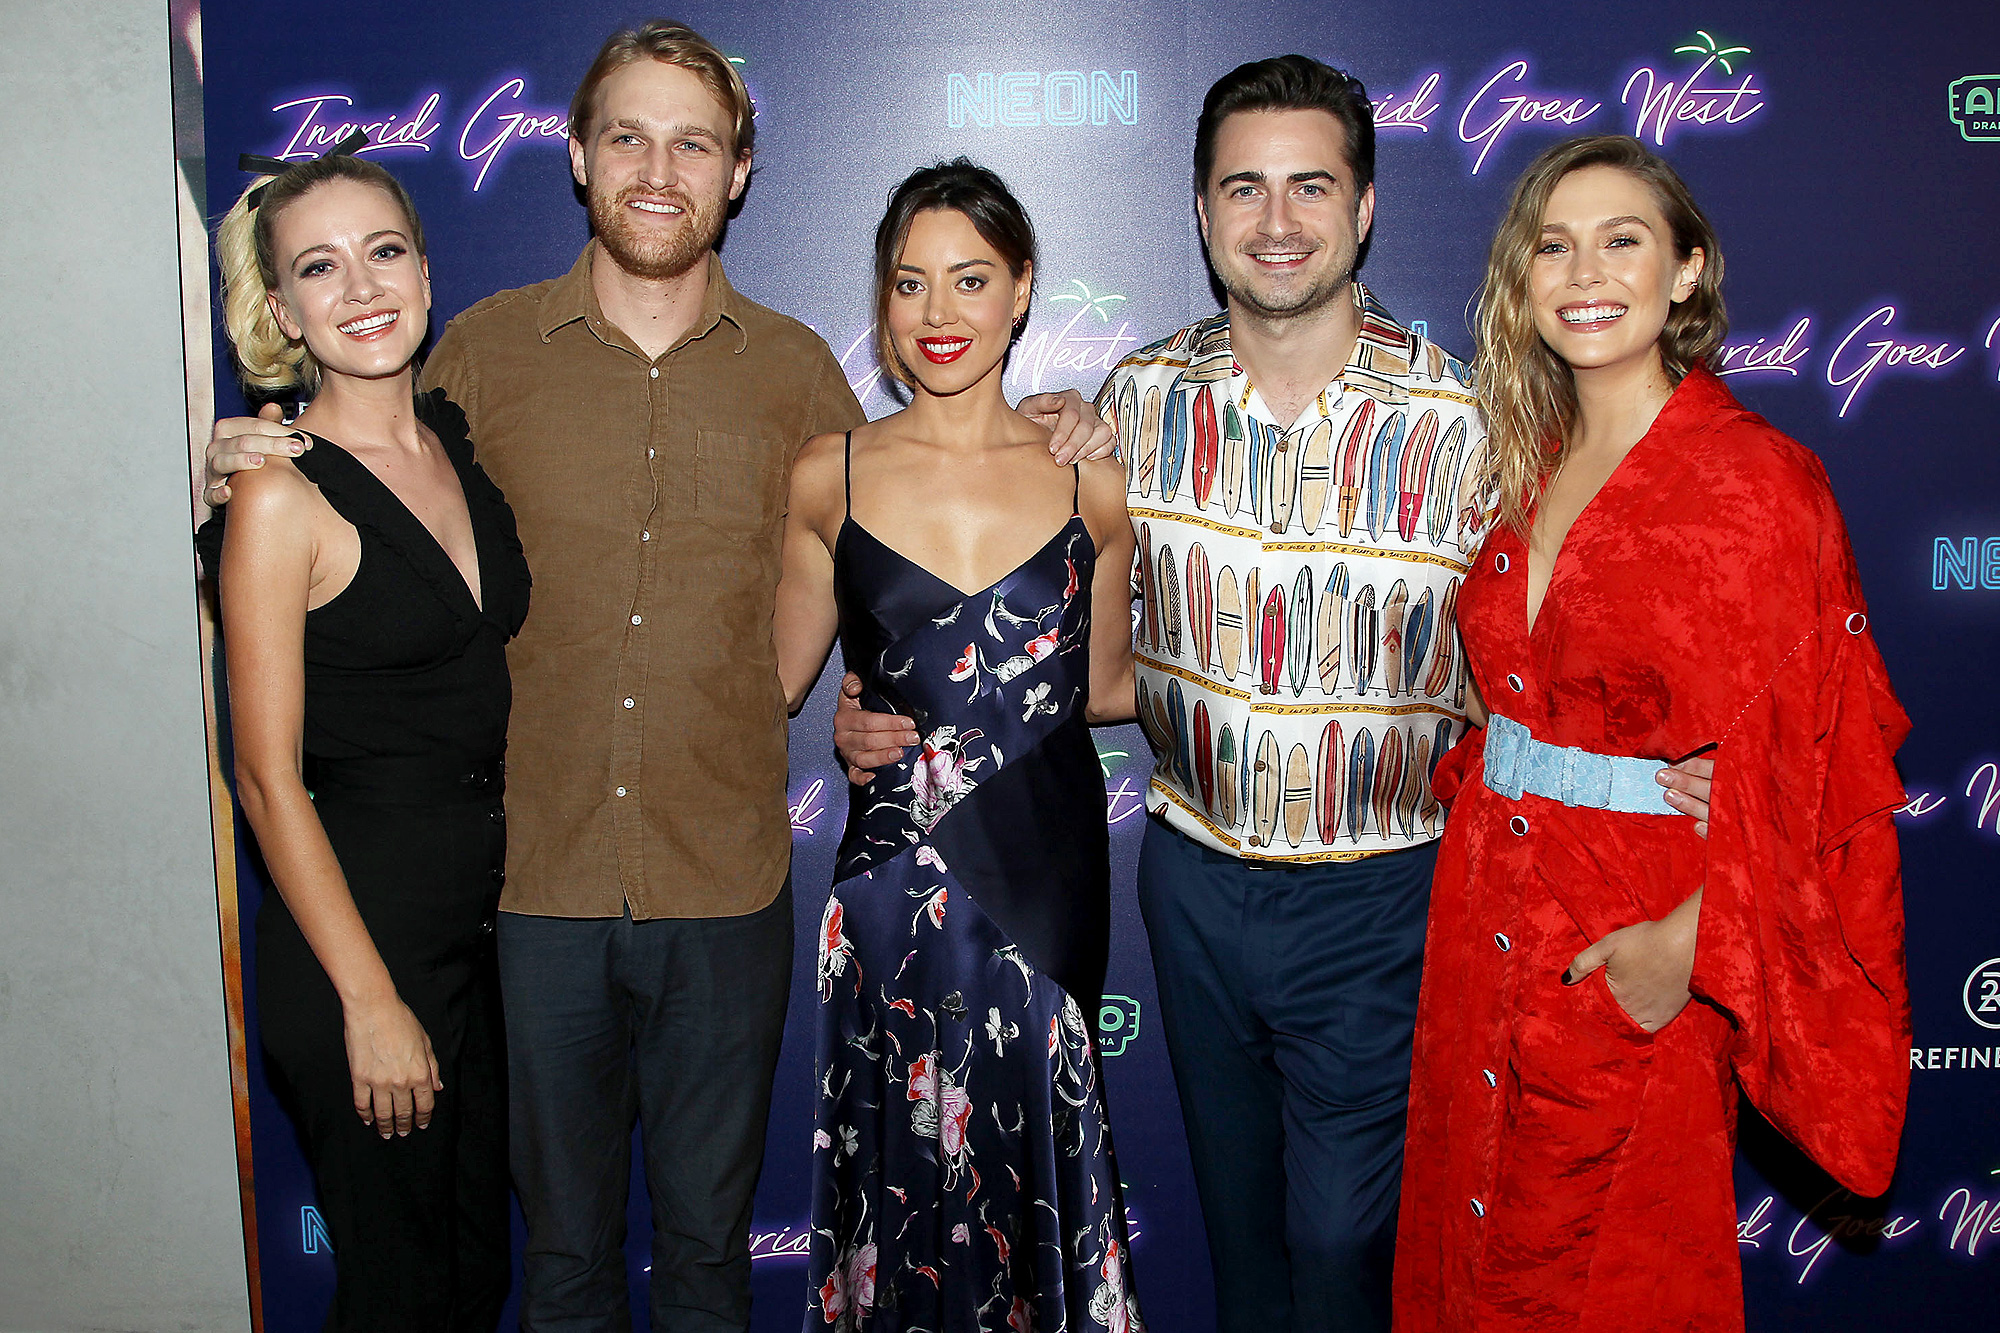 Neon hosts the New York premiere of 'Ingrid Goes West', New York, USA - 08 Aug 2017